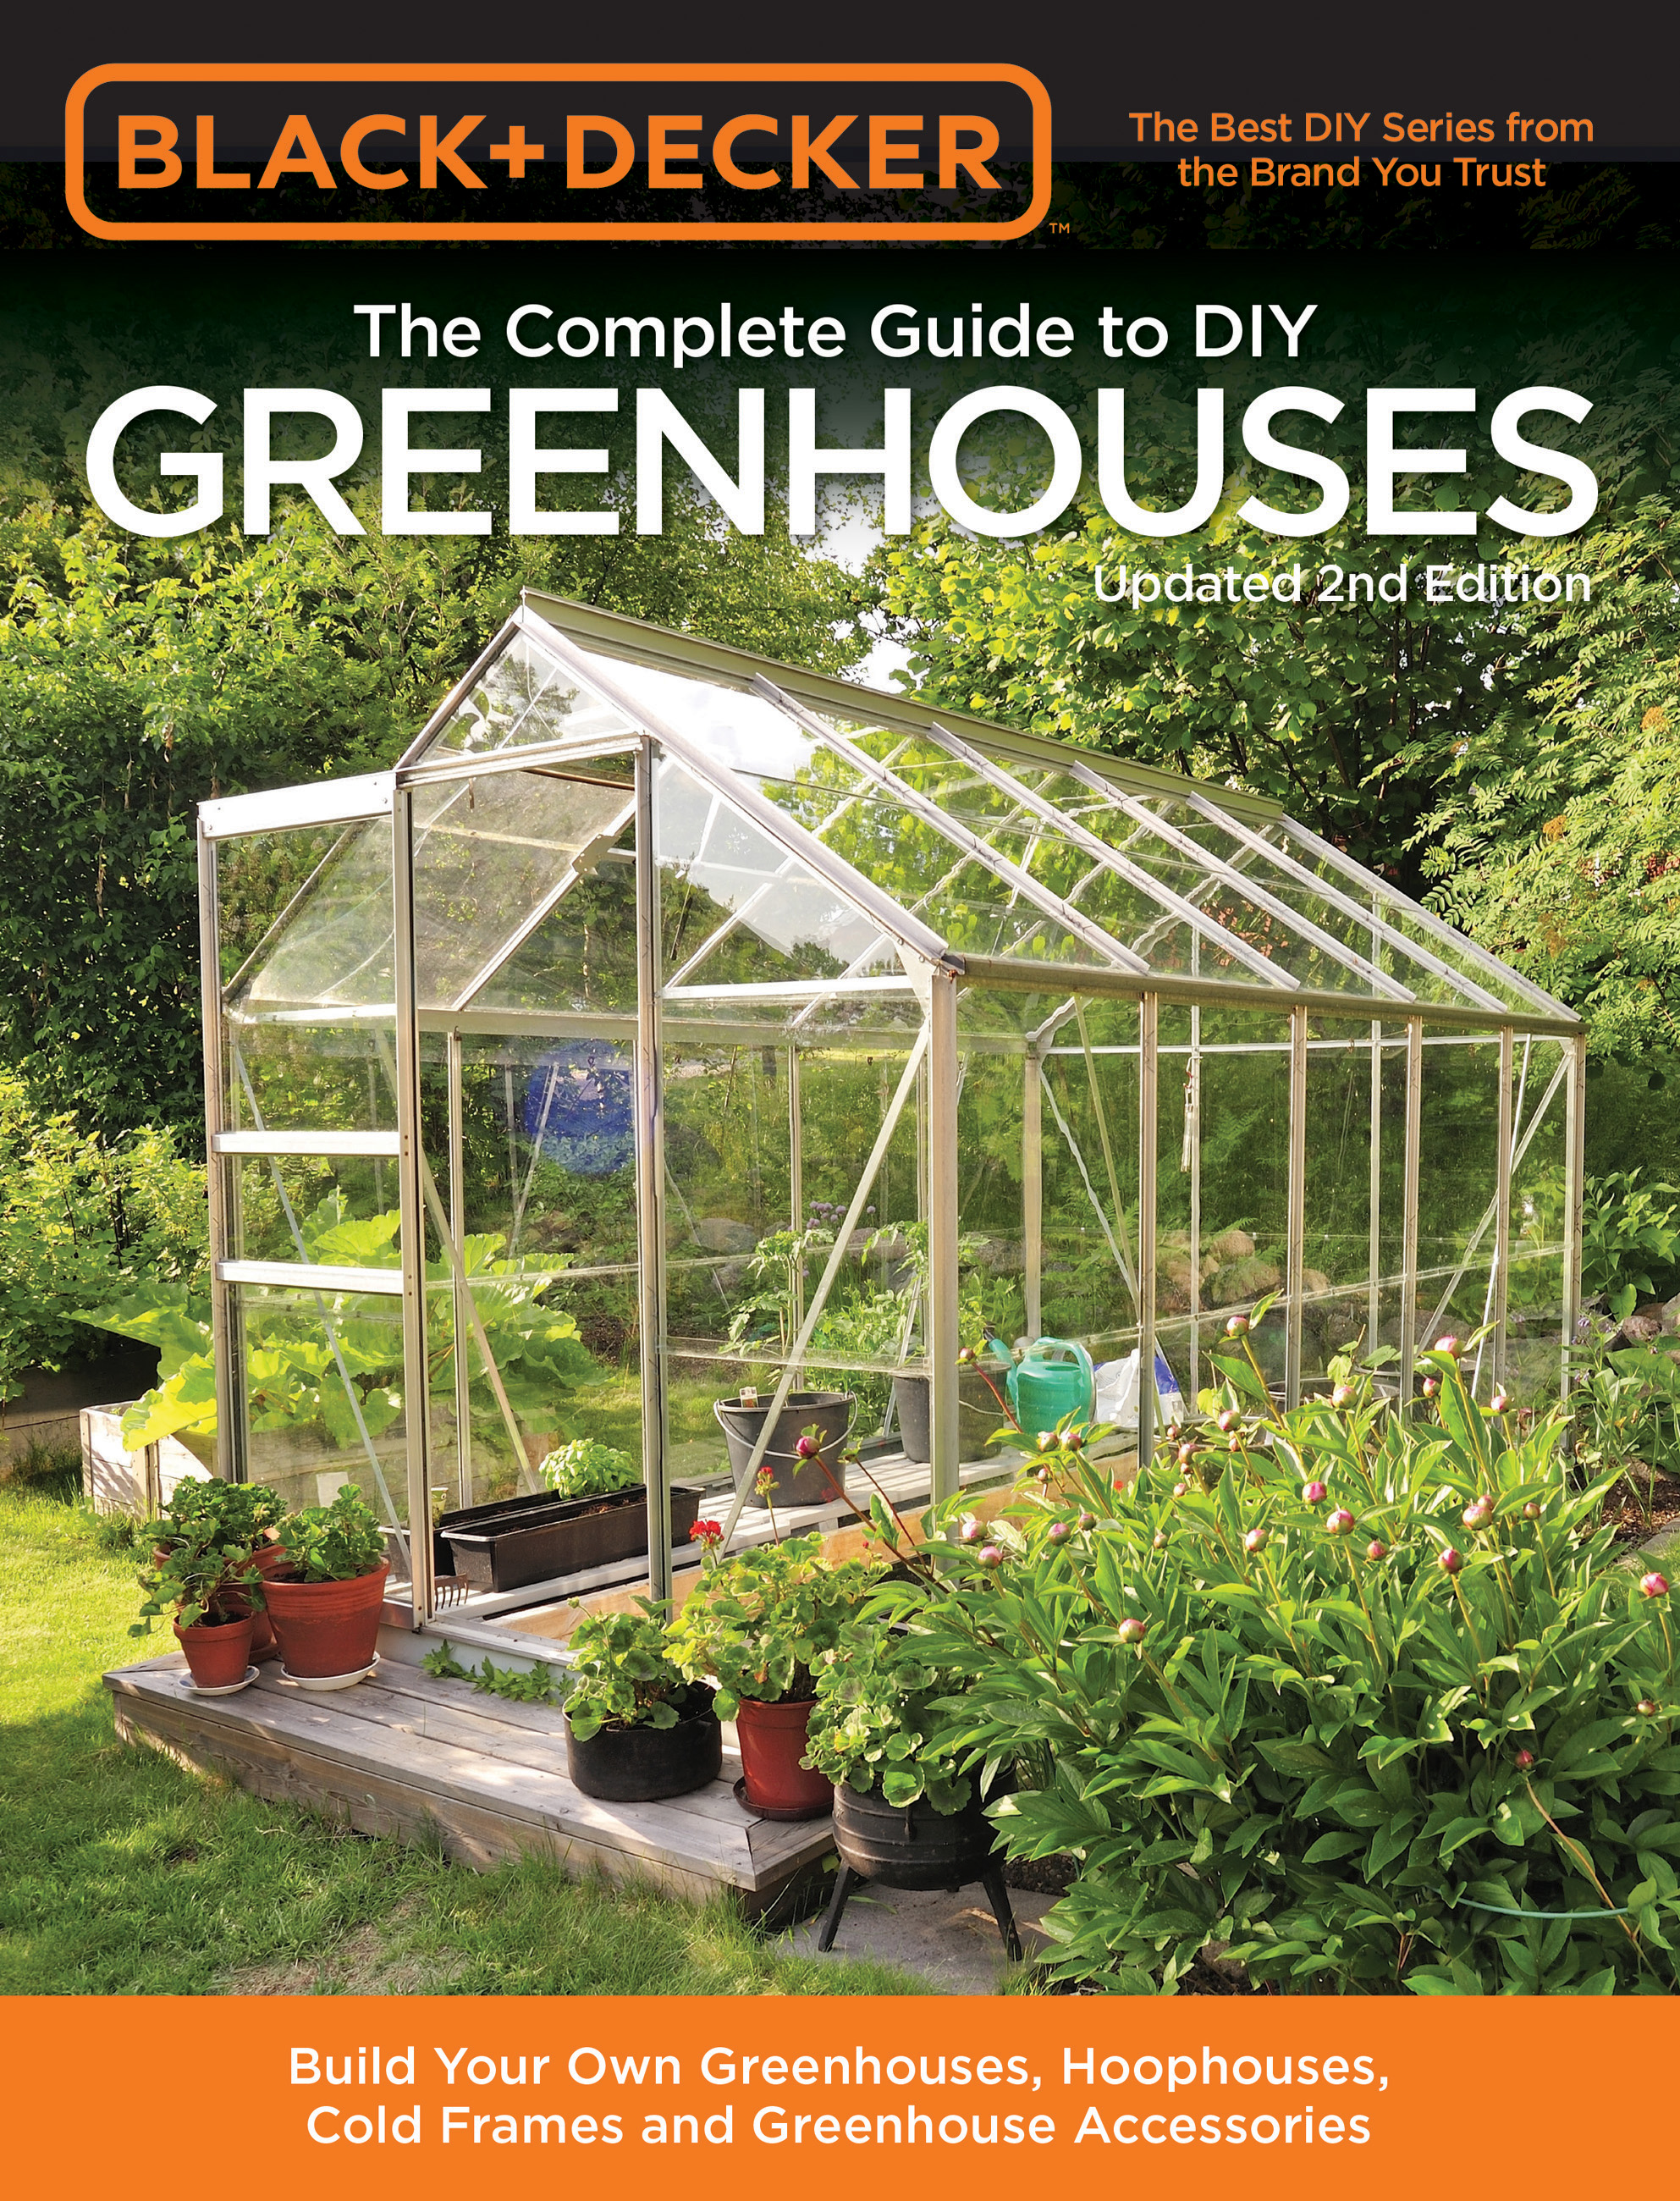 Black & Decker The Complete Guide to DIY Greenhouses, Updated 2nd Edition Build Your Own Greenhouses, Hoophouses, Cold Frames & Greenhouse Accessories